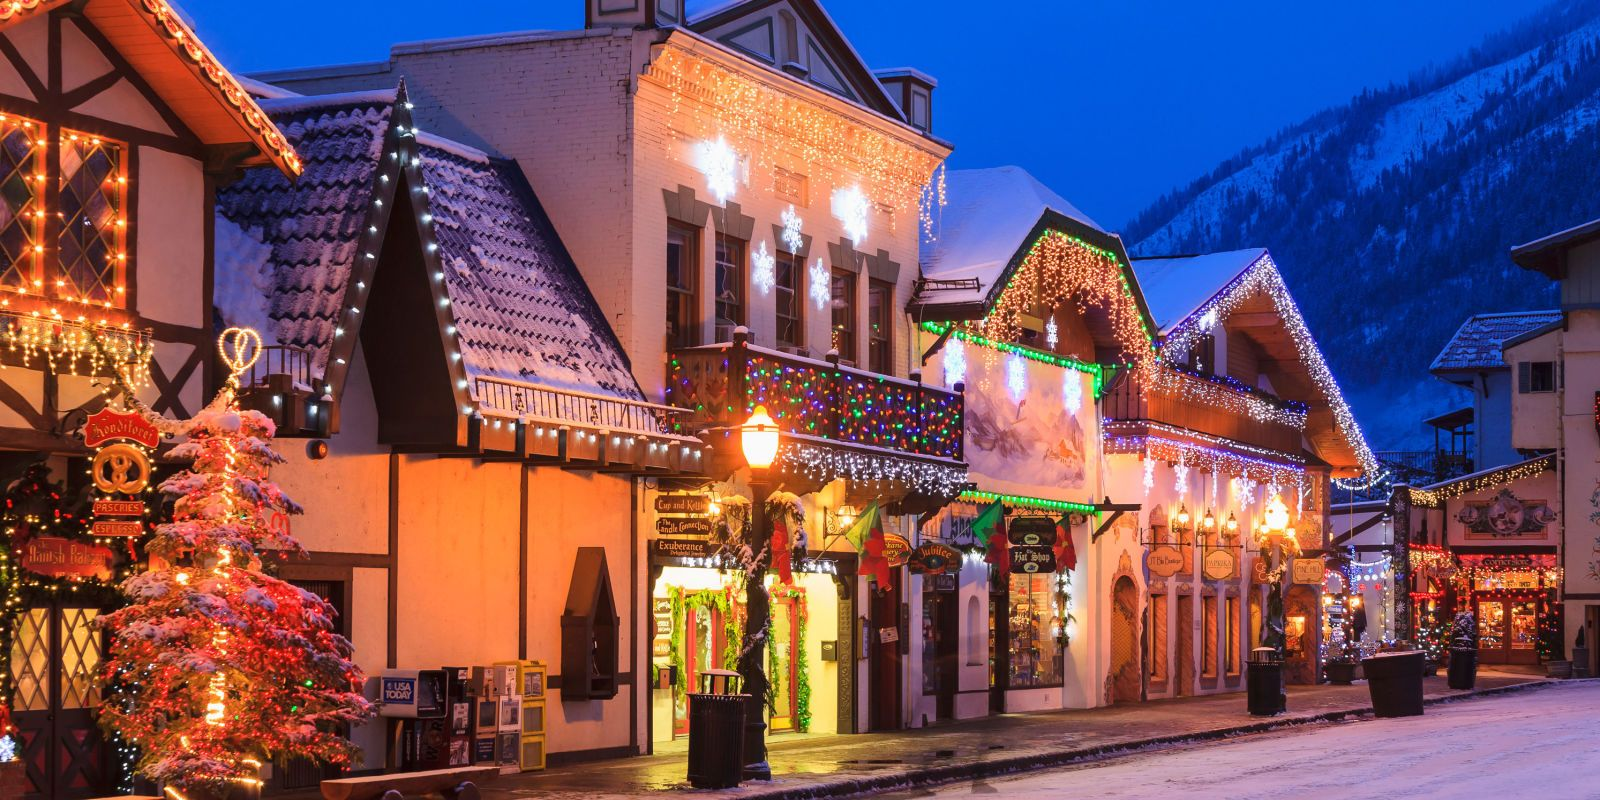 Best Christmas Towns.The Best Christmas Towns To Visit For The Holidays Viajes